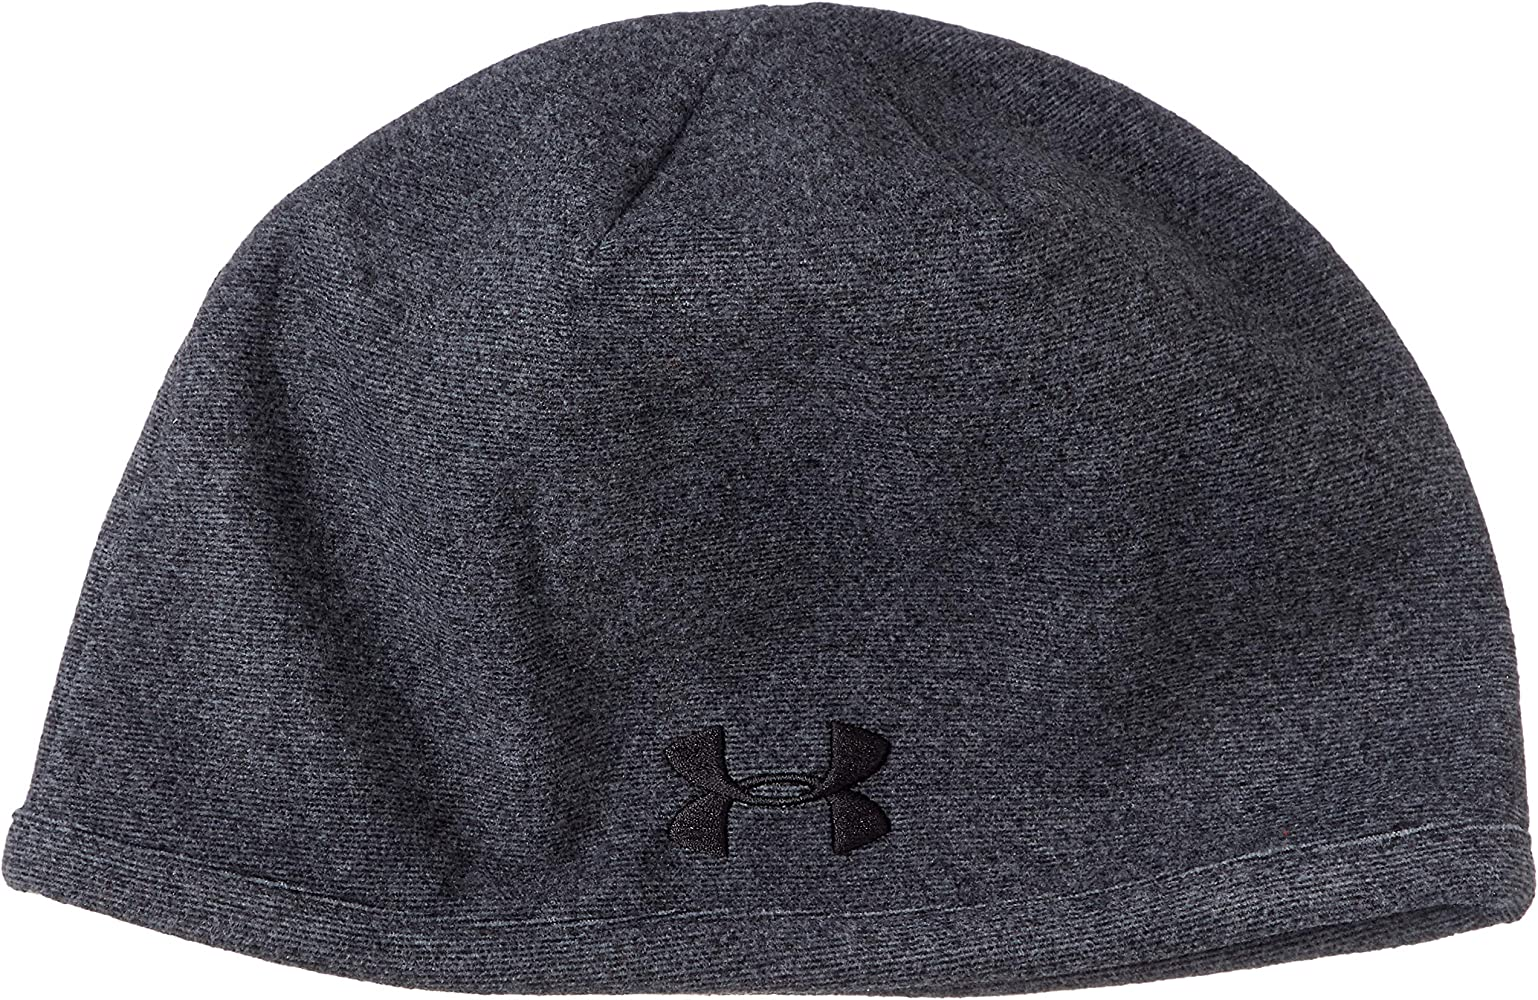 Under Armour Survivor Fleece Beanie 2.0 Gorra, Gris (Grey 1300837 ...